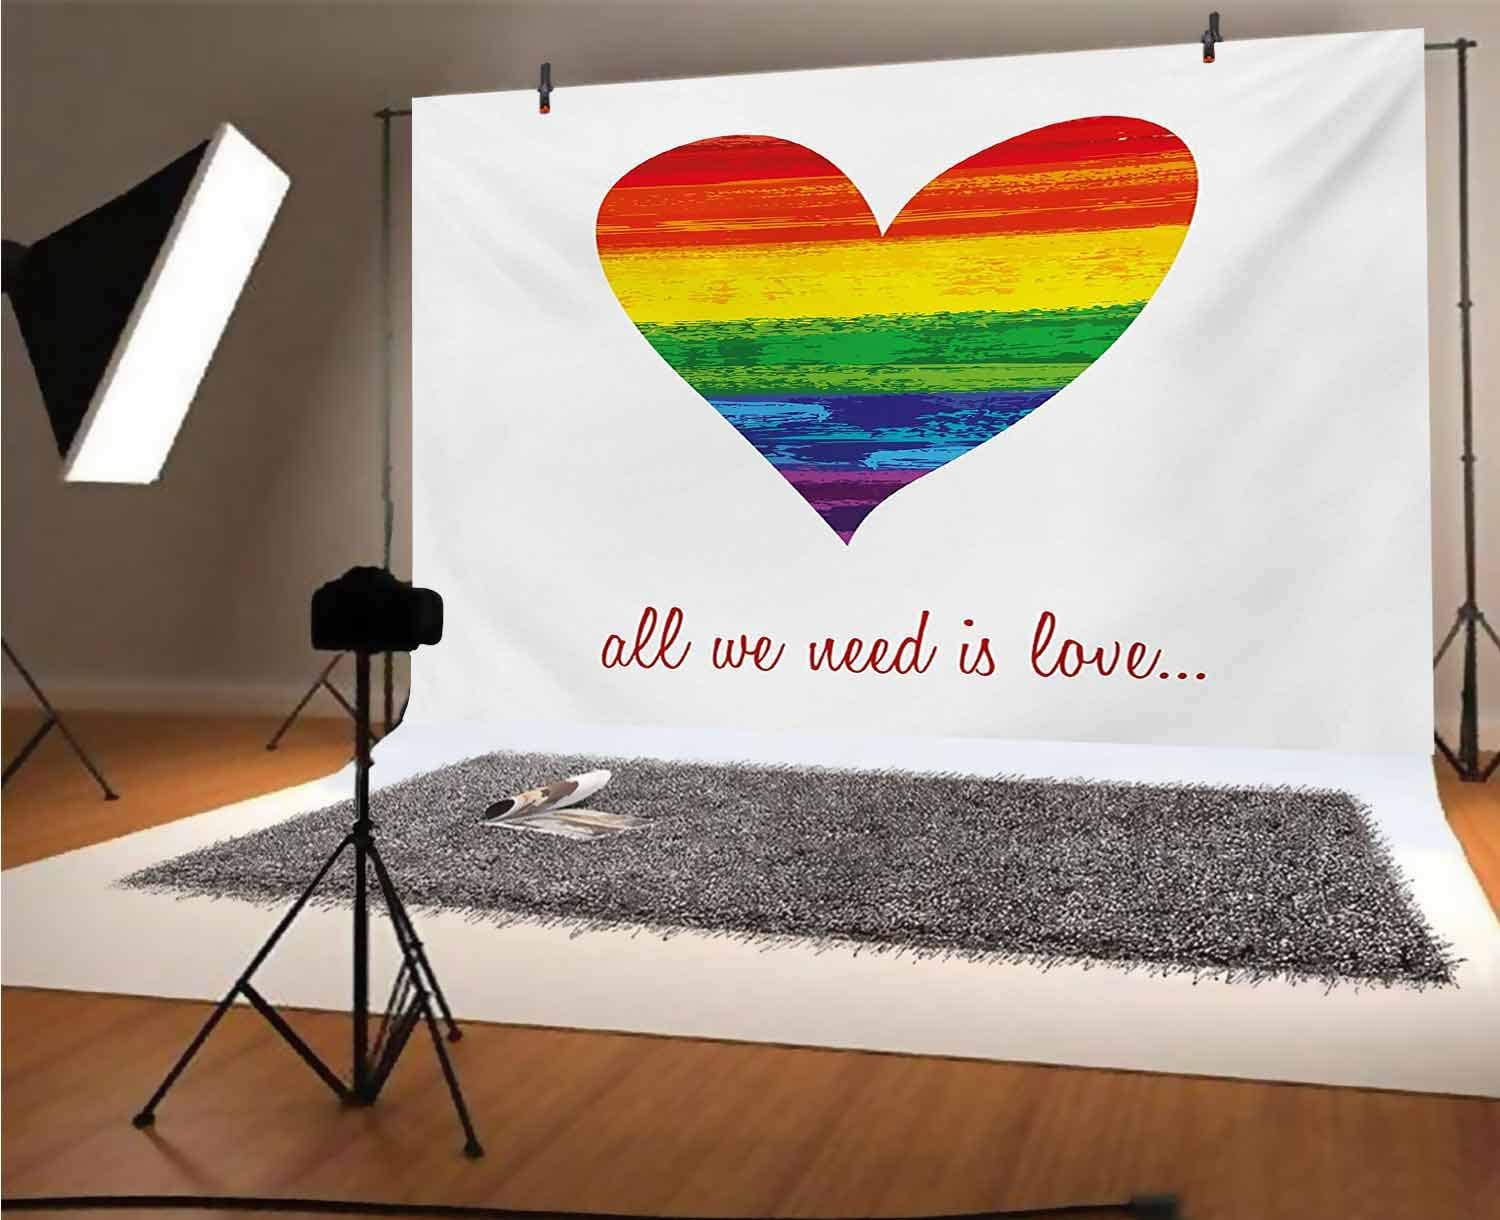 Pride 12x10 FT Vinyl Photography Background Backdrops,All We Need Is Love Quote with Heart Symbol in the Gay Parade Colors Valentines Background for Graduation Prom Dance Decor Photo Booth Studio Prop